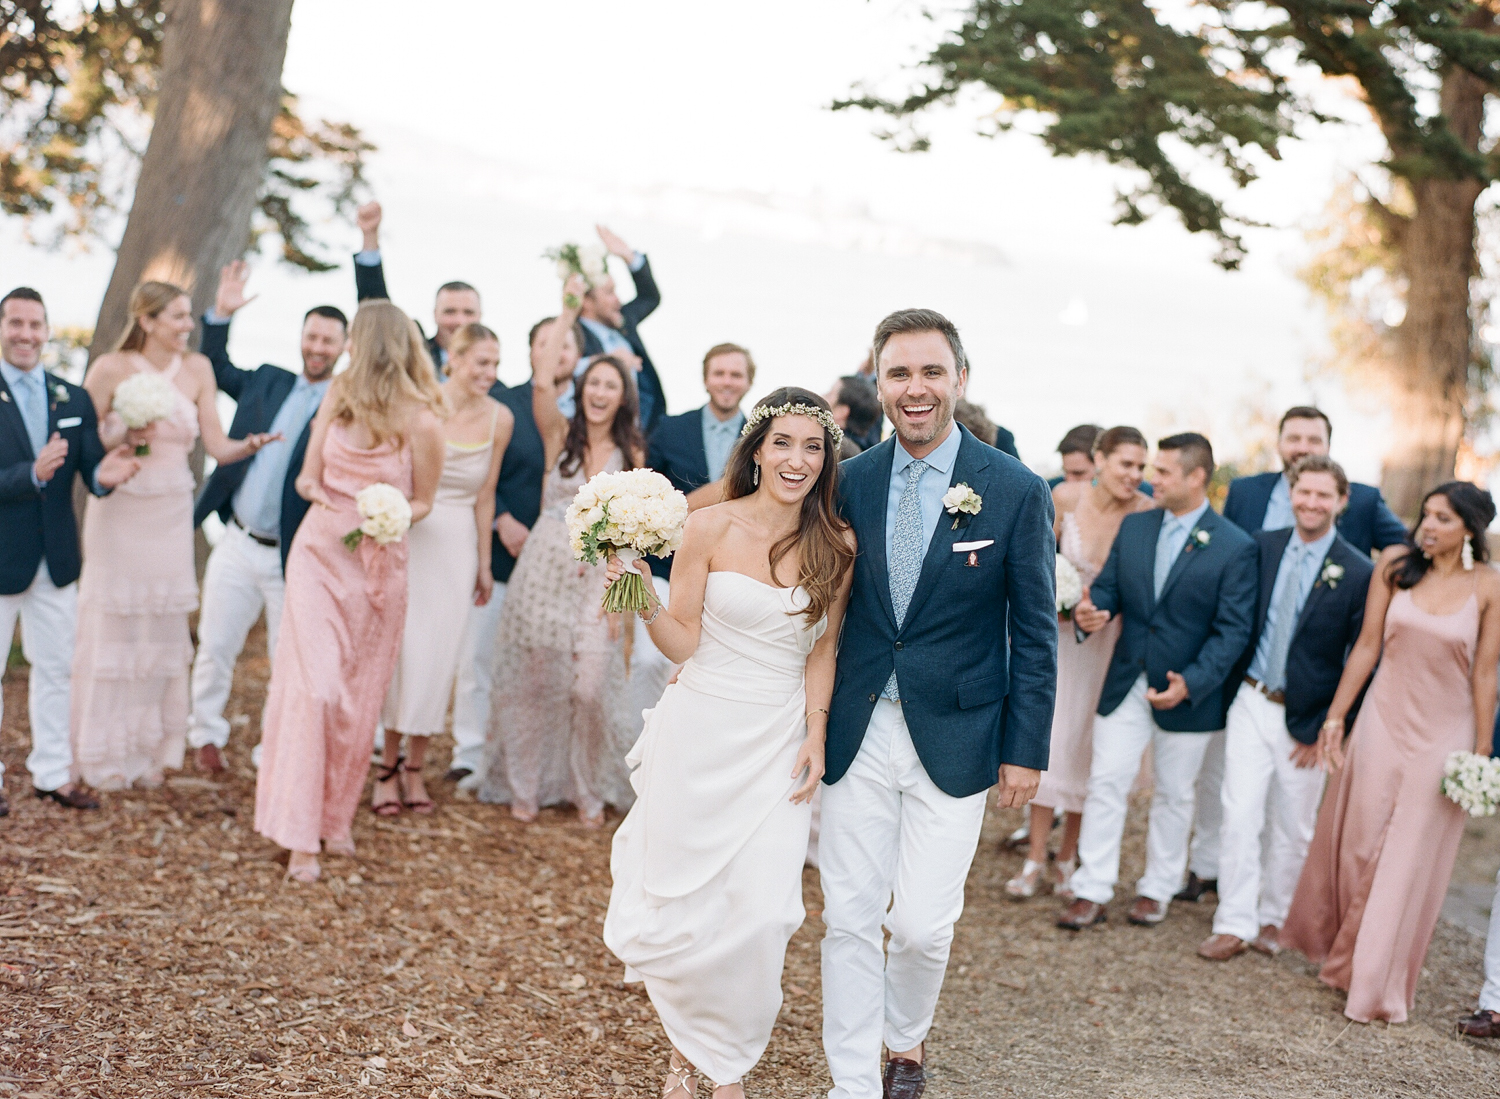 The bridal party laughs and jokes before the wedding ceremony next to the San Francisco Bay; Sylvie Gil Photography